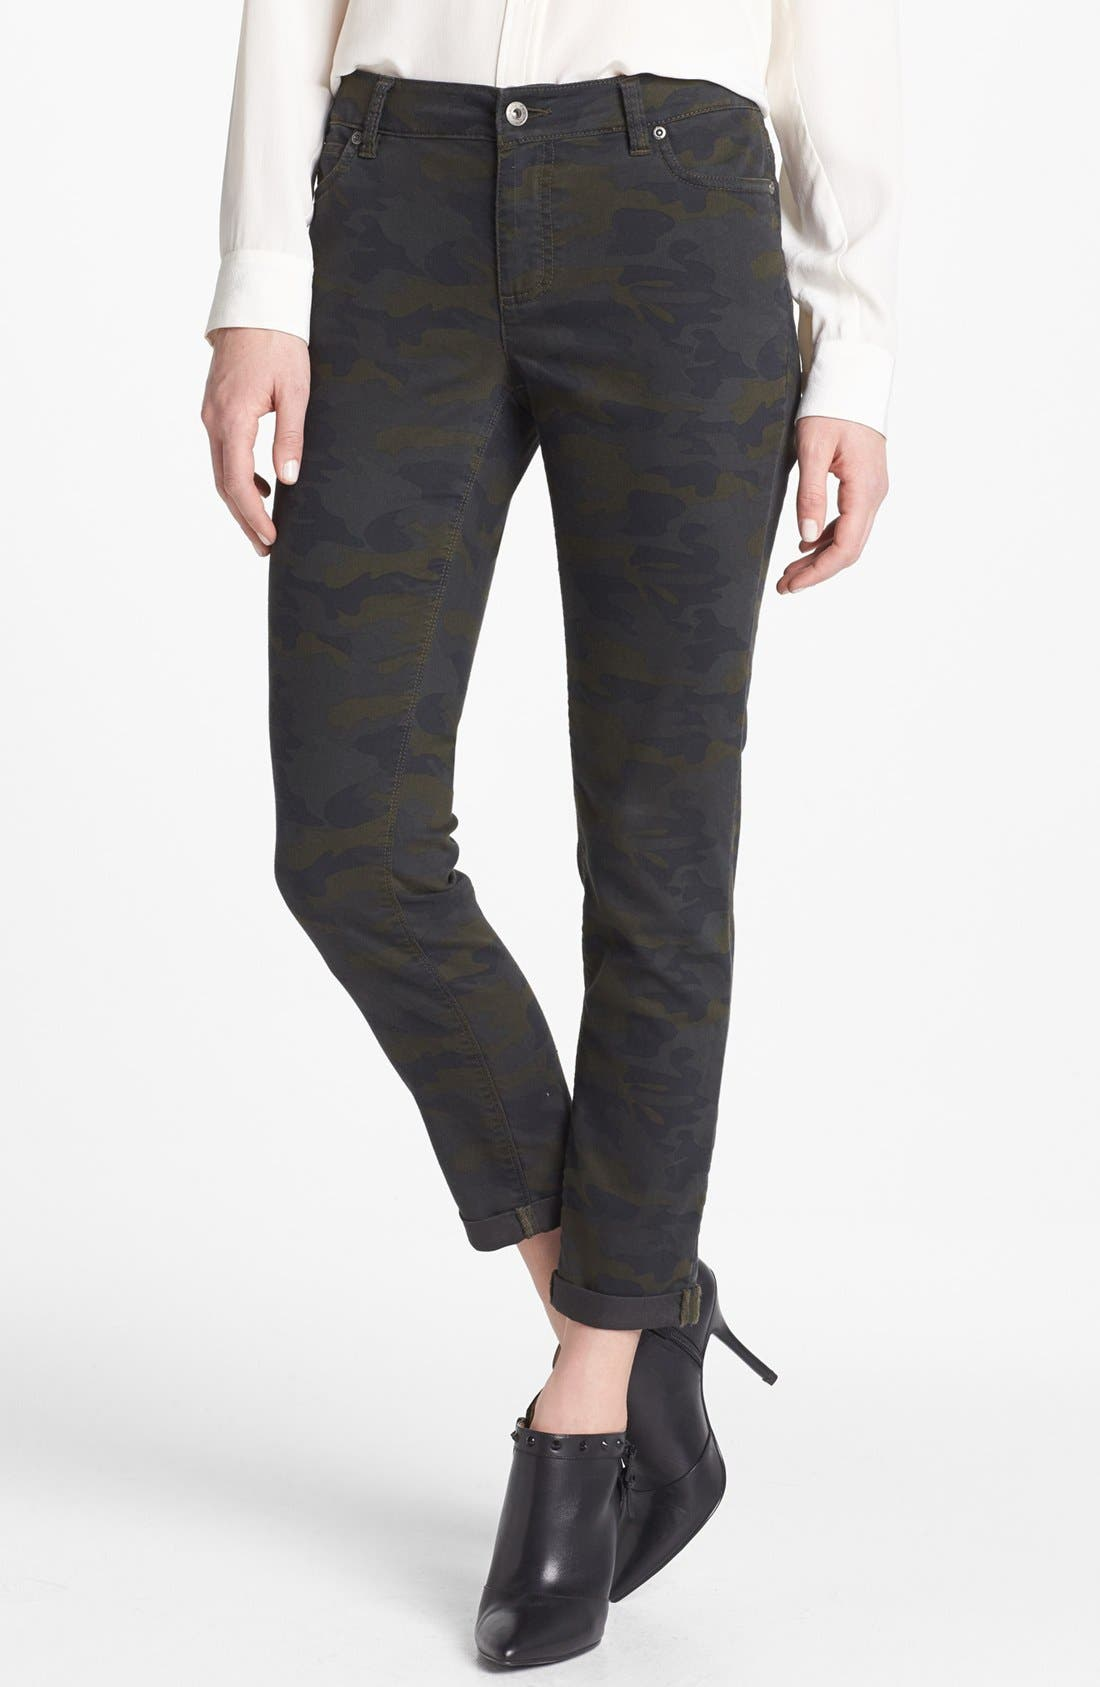 Main Image - Two by Vince Camuto Camo Cuff Jeans (Dark Leaf)